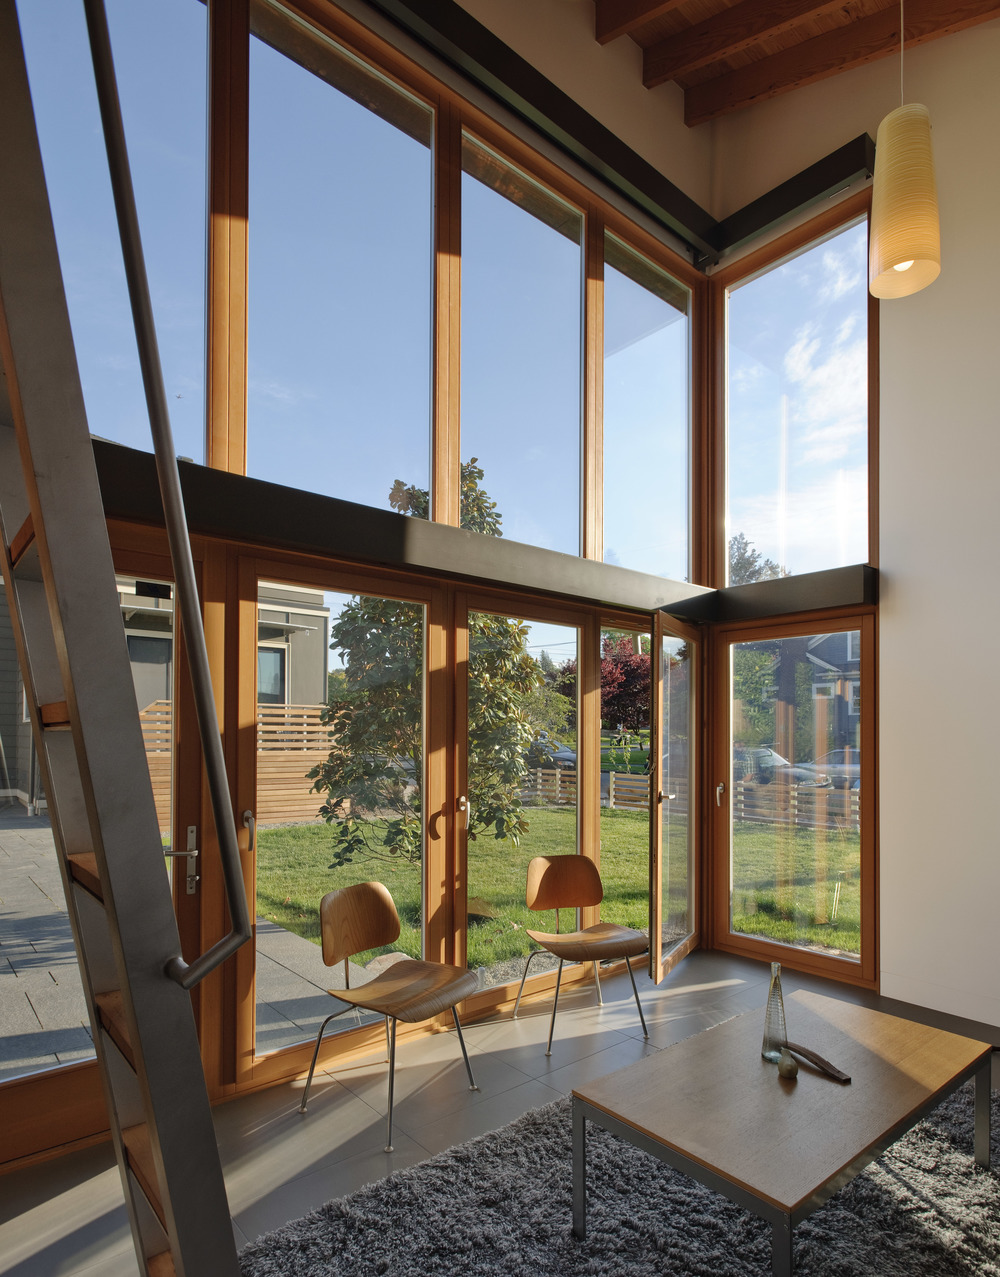 architect: gary shoemaker architects pc  project architect for gary shoemaker architects pc